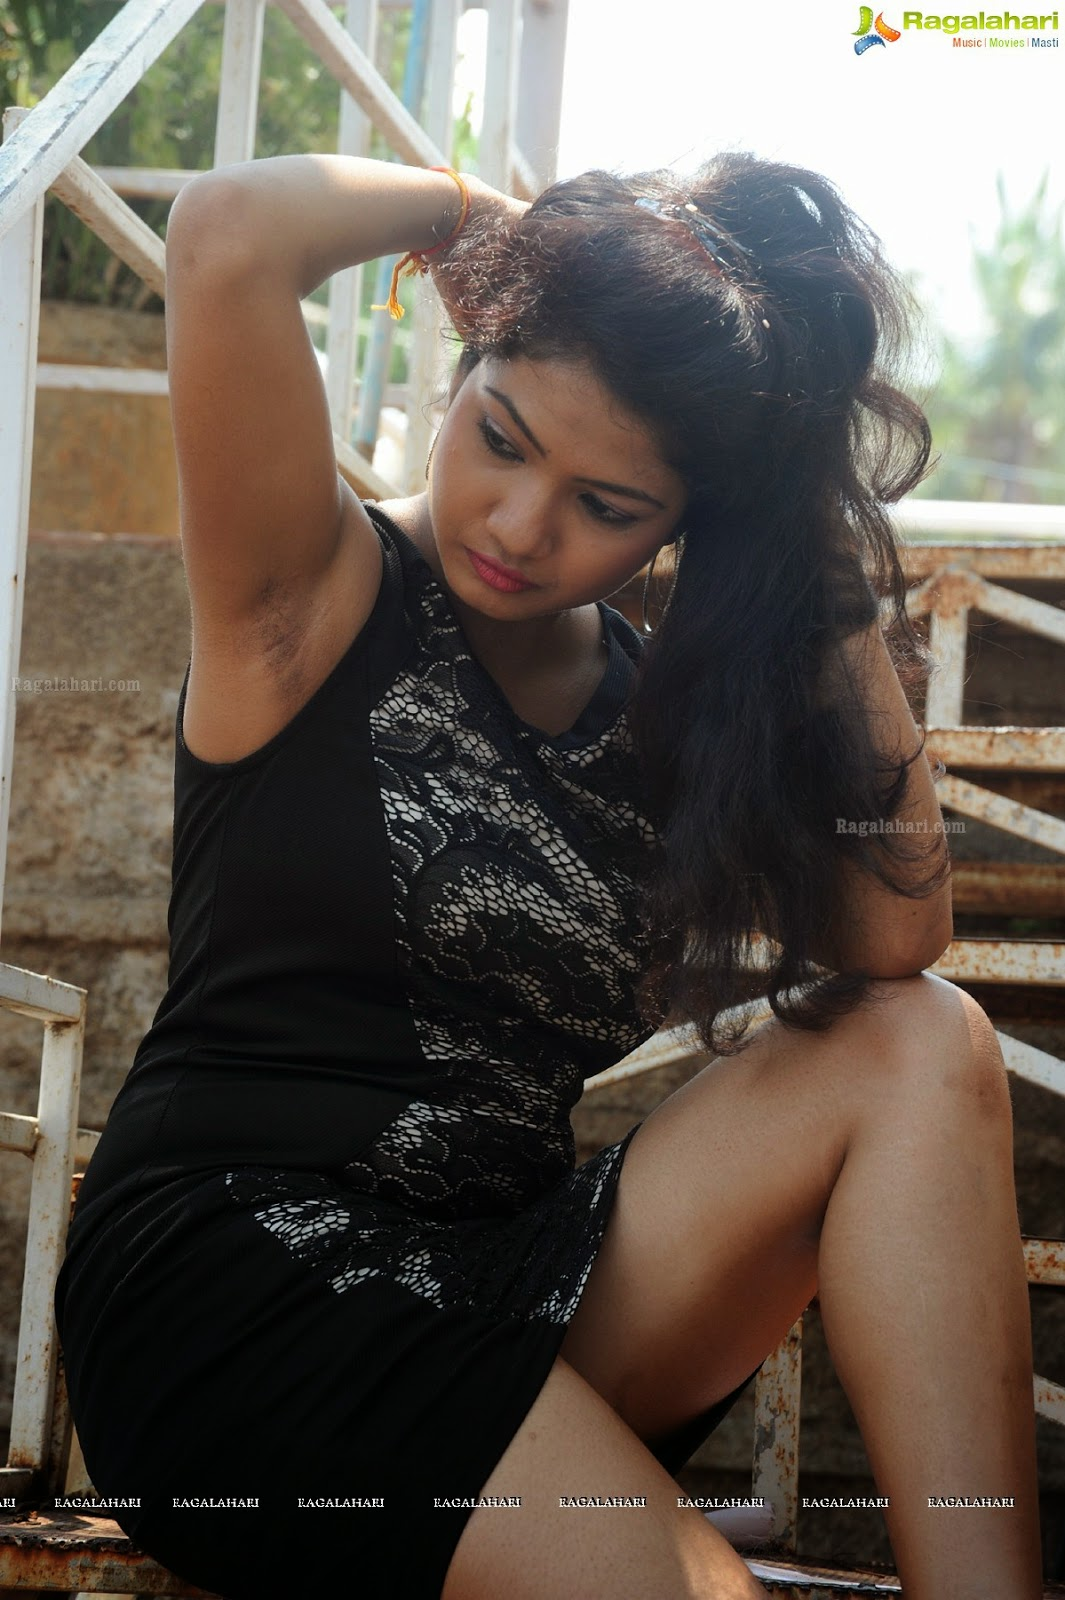 Nandita Mandal Hairy Armpit show Hot Photoshoot Nandita Mandal hot wet armpit pics Nandita Mandal Hot Armpit Show Cleavy & Navel Show. Nandita Mandal nice armpit show boos show. Nandita Mandal Showing Awesome Armpit Hot Bulging Melons In Bikini Blouse..Spicy..!! Nandita Mandal Sexy Armpit Nandita Mandal Nude Spicy Armpit Show In BRA & Panty..Don't Miss!!! Nandita Mandal Pose- unseen Photography Showing Armpit. Nandita Mandal Boobs and Armpit Show Nandita Mandal hot armpit show in saree Nandita Mandal Hot Photo Shoot, Nandita Mandal Hot Photos,Actress Nandita Mandal Latest Photos, Nandita Mandal Hot Photos, Nandita Mandal Spicy Stills, Nandita Mandal Spicy Pics, Nandita Mandal Hot Stills, Nandita Mandal Wallpapers, Nandita Mandal Photos, Nandita Mandal Images, Nandita Mandal SareE Photos, Nandita Mandal Navel Show Photos, Nandita Mandal Stills, Nandita Mandal, Nandita Mandal Hot Photo Shoot Nandita Mandal Armpit and Nipple Show boobs show Armpit Actress Nandita Mandal Smoking Hot & Spicy Pics In a Bikini... Armpit Actress Nandita Mandal Latest Smoking Hot & Spicy Portfolio Pics...Don't Miss..!! Armpit Actress Nandita Mandal Sexy Babe's Latest Spicy Photoshoot Pics.. Armpit Actress Nandita Mandal Showing Her Awesome Hot Thighs..Spicy Pics... Armpit Actress Nandita Mandal Spicy Low Neck Massieve Melons Armpit Actress Nandita Mandal photos, Armpit Actress Nandita Mandal bikini photos, Actress bikini photos, Armpit Actress Nandita Mandal hot bikini, Armpit Actress Nandita Mandal bikini pics, Armpit Actress Nandita Mandal spicy stills, Armpit Actress Sravya, Armpit Actress Nandita Mandal photos Nandita Mandal armpit show Nandita Mandal Smoking Hot & Sexy Photoshoot In aSexy Shorts & Sleevless Top.. Nandita Mandal Showing Her Awesome Hot Thunder Thighs In a Blue Mini Skirt.... Nandita Mandal, Nandita Mandal stills, Nandita Mandal photos, Nandita Mandal hot and spicy stills, Nandita Mandal spicy gallery, Nandita Mandal heroine, spicy Nandita Mandal, hot Nandita Mandal, Nandita Mandal exposing stills, Nandita Mandal sexy stills, spicy actress stills